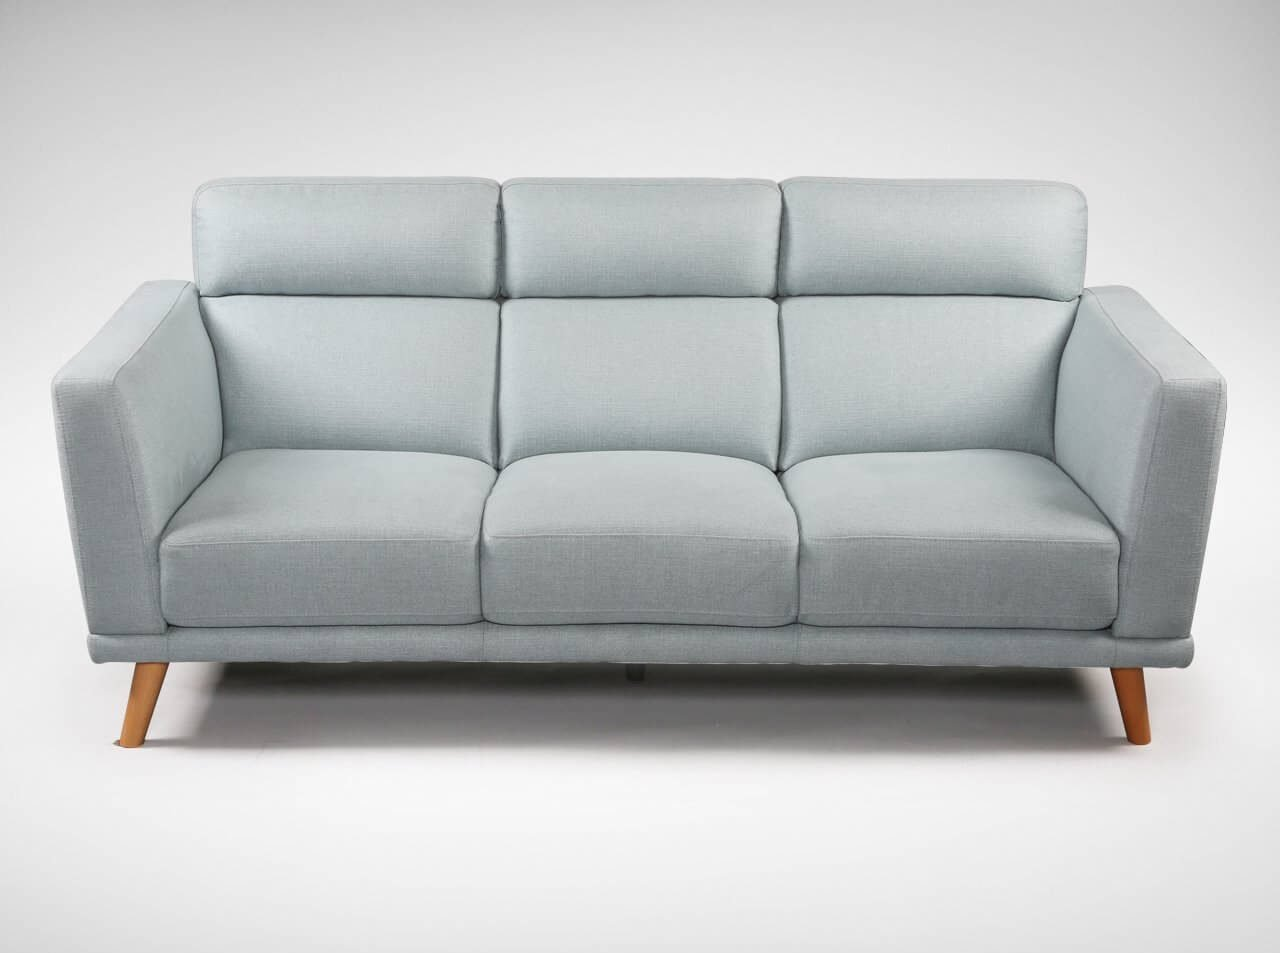 Fabric Sofa That Accommodates 3 Guests - Comfort Furniture